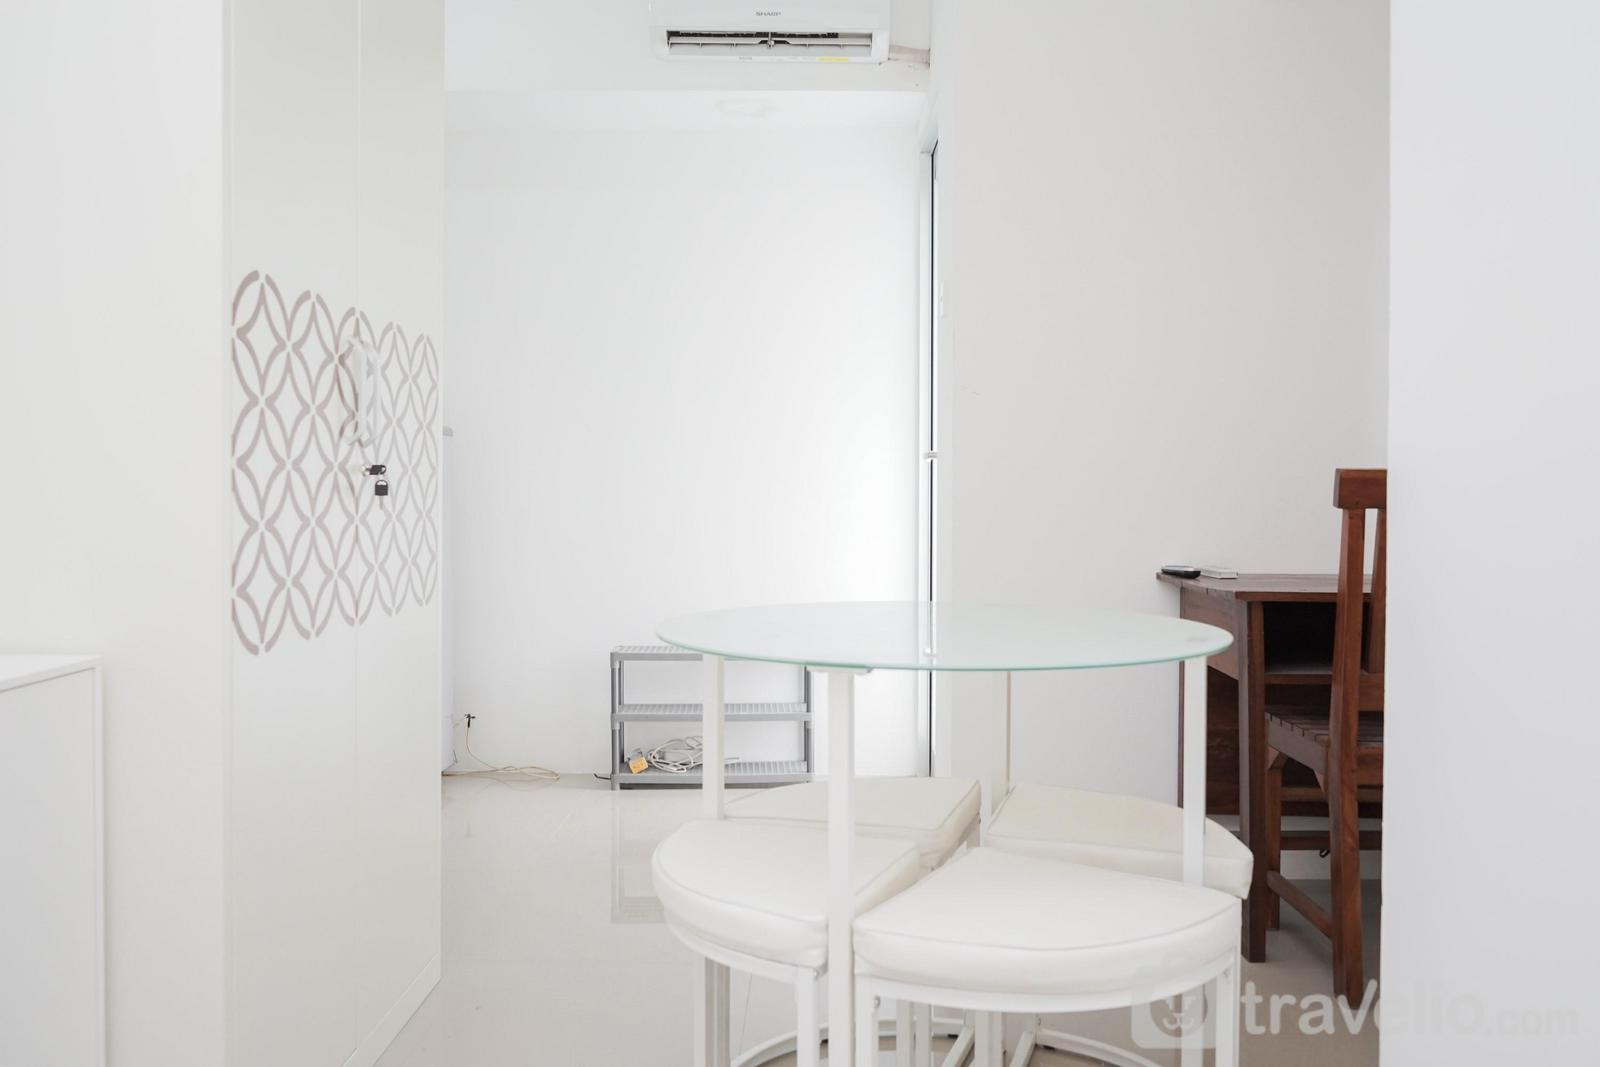 Apartemen Urbantown Serpong - New and Simply Studio at Urbantown Serpong Apartment By Travelio